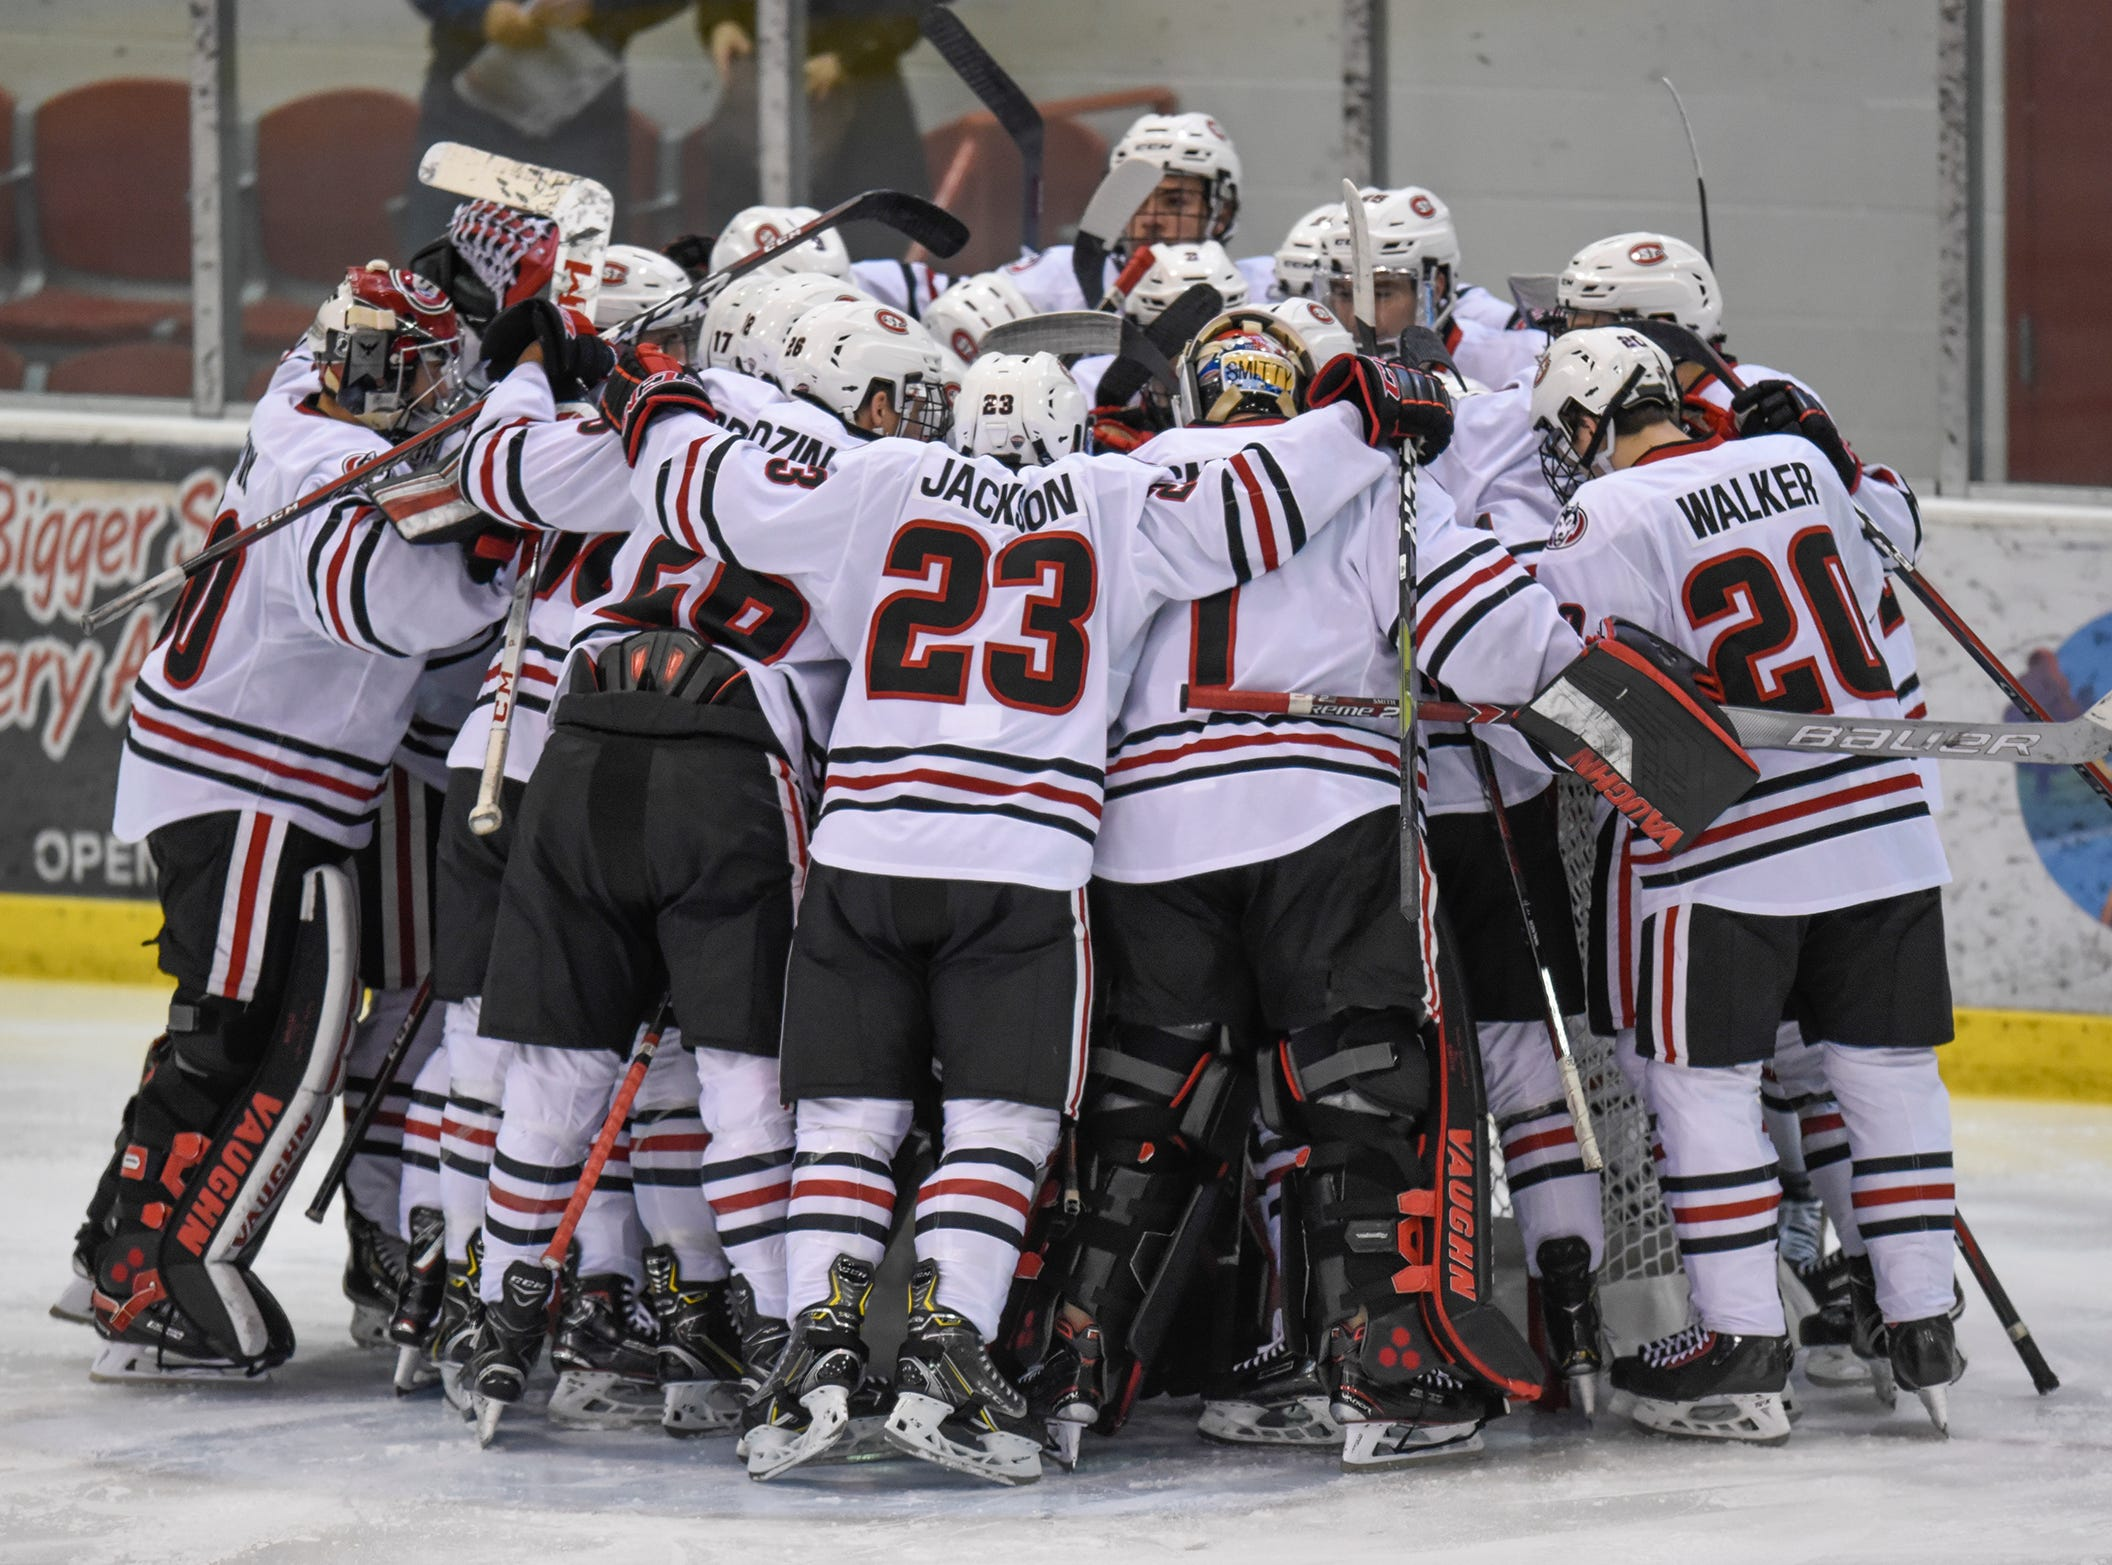 St. Cloud State players gather to start the Saturday, Nov. 10, game against the University of Denver at the Herb Brooks National Hockey Center in St. Cloud.